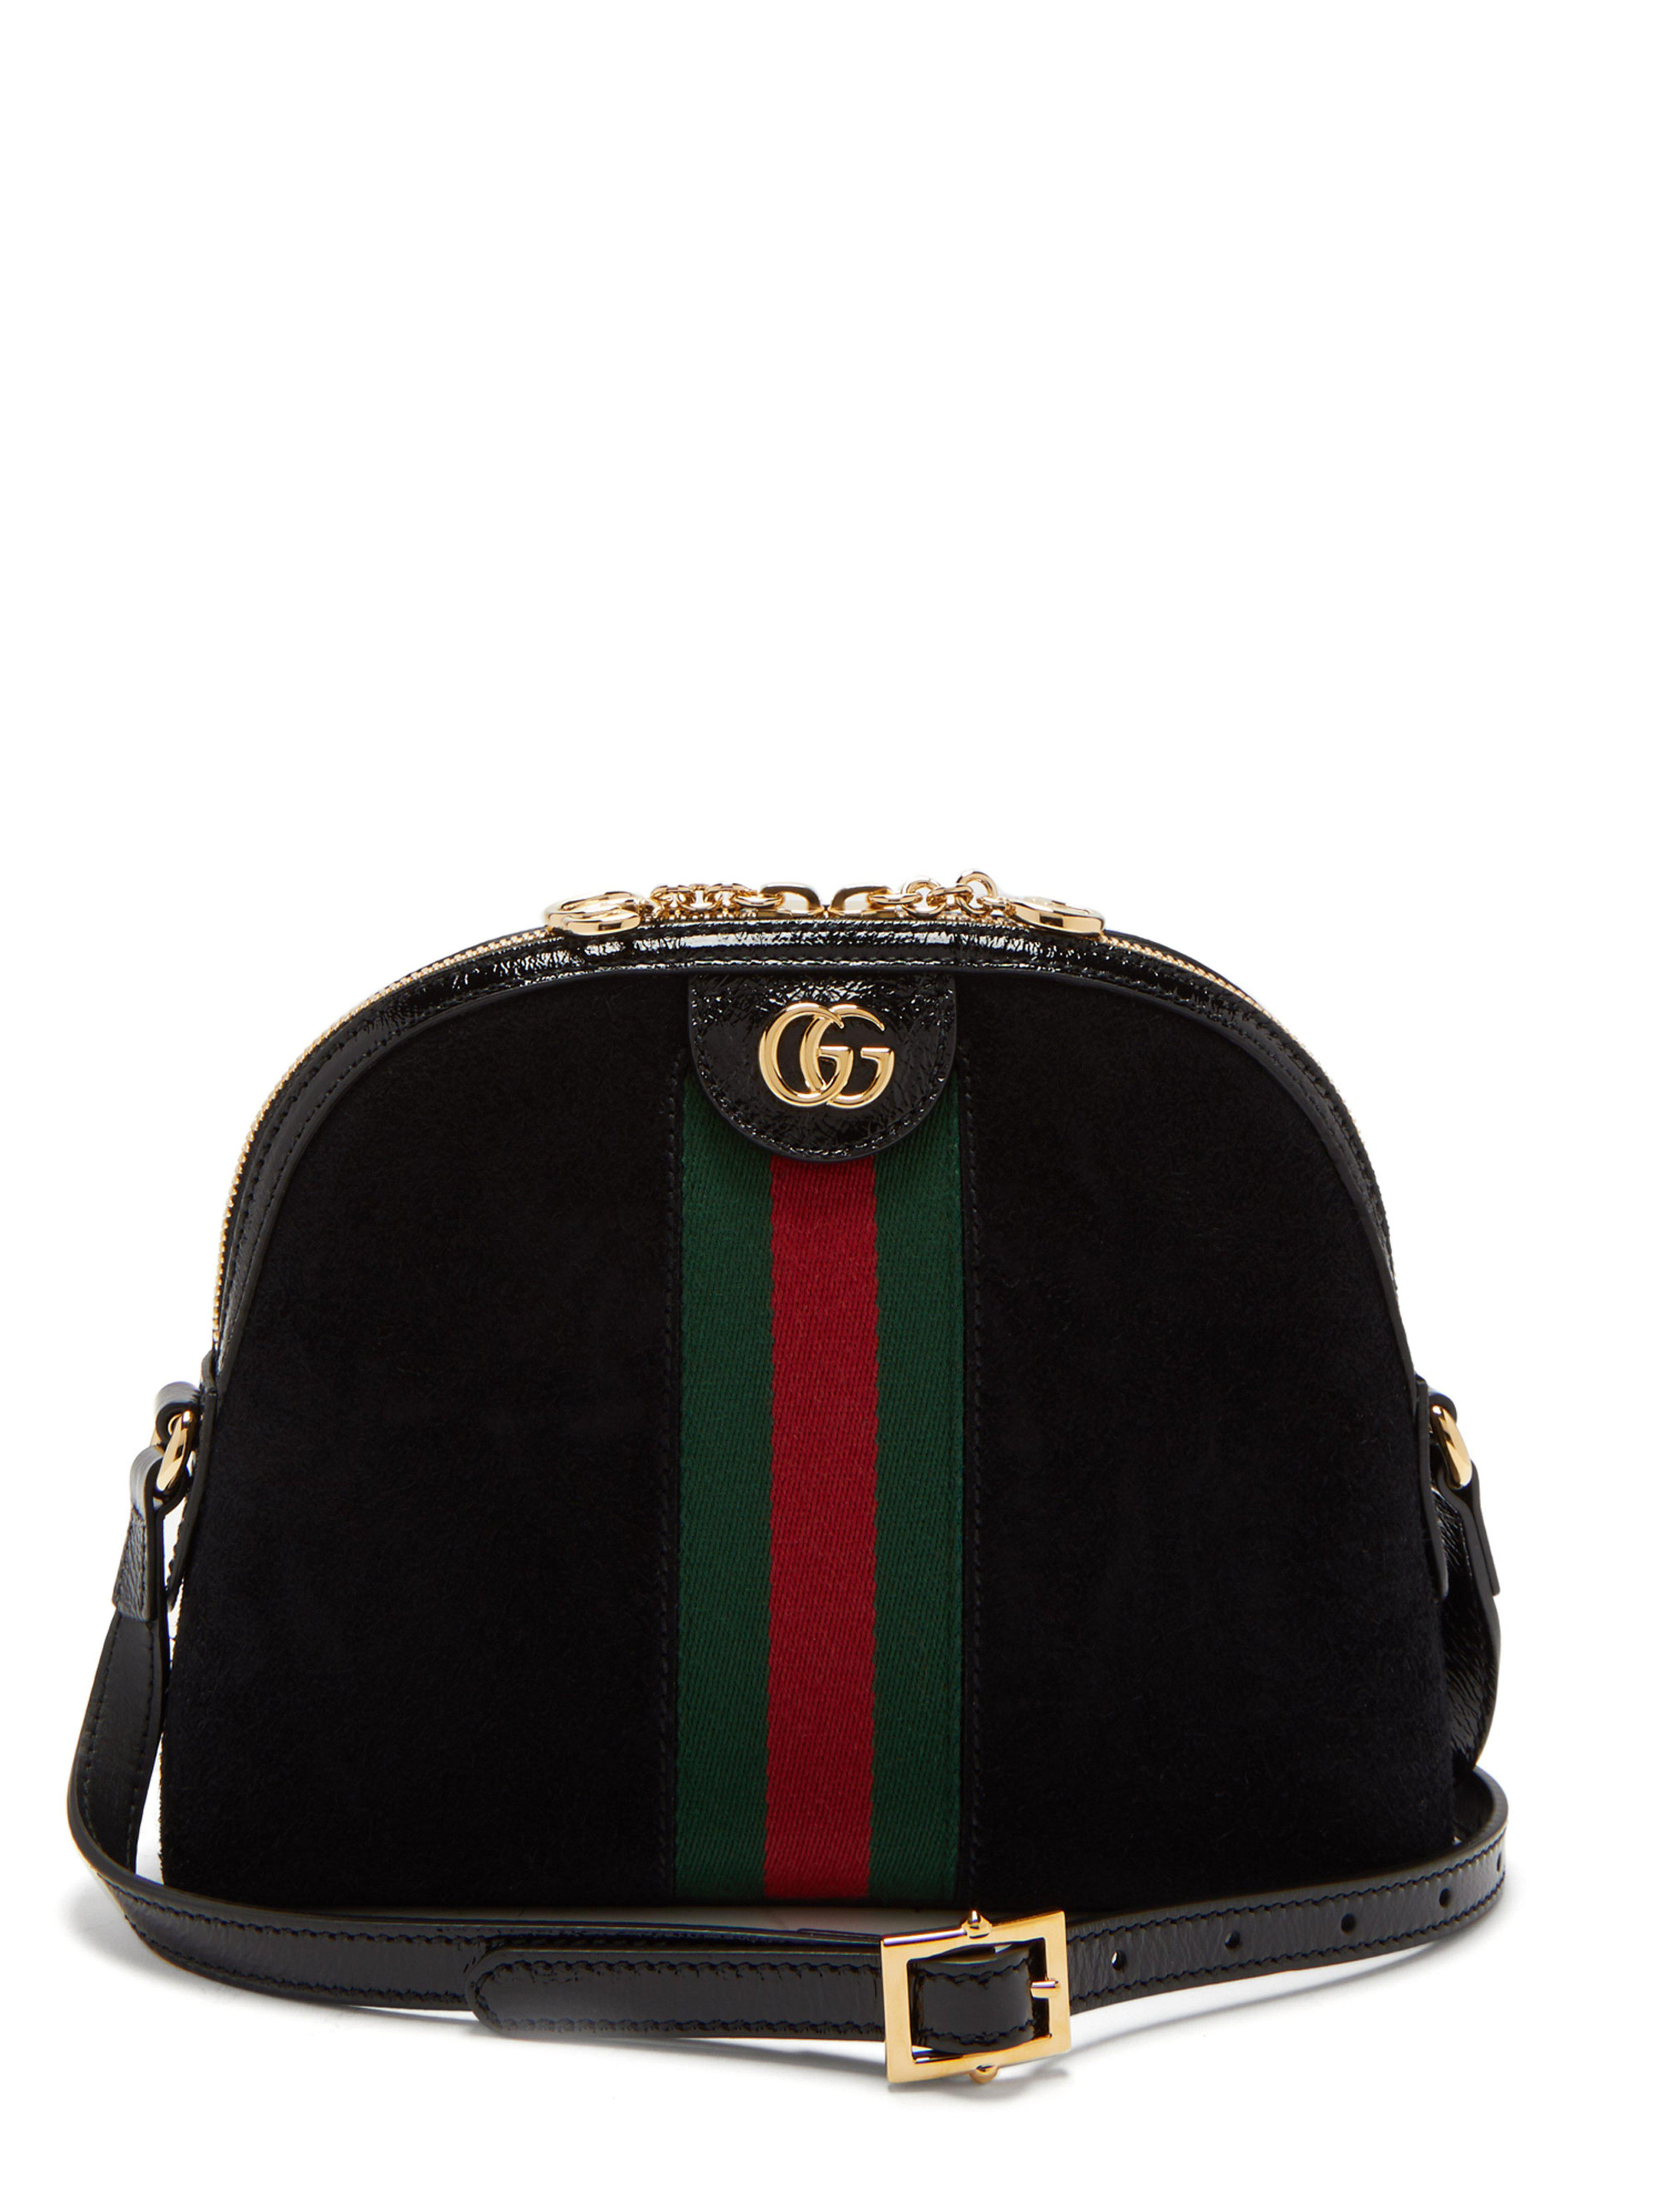 daaa1bb9ce7a Gucci Ophidia Gg Suede Cross Body Bag in Black - Lyst